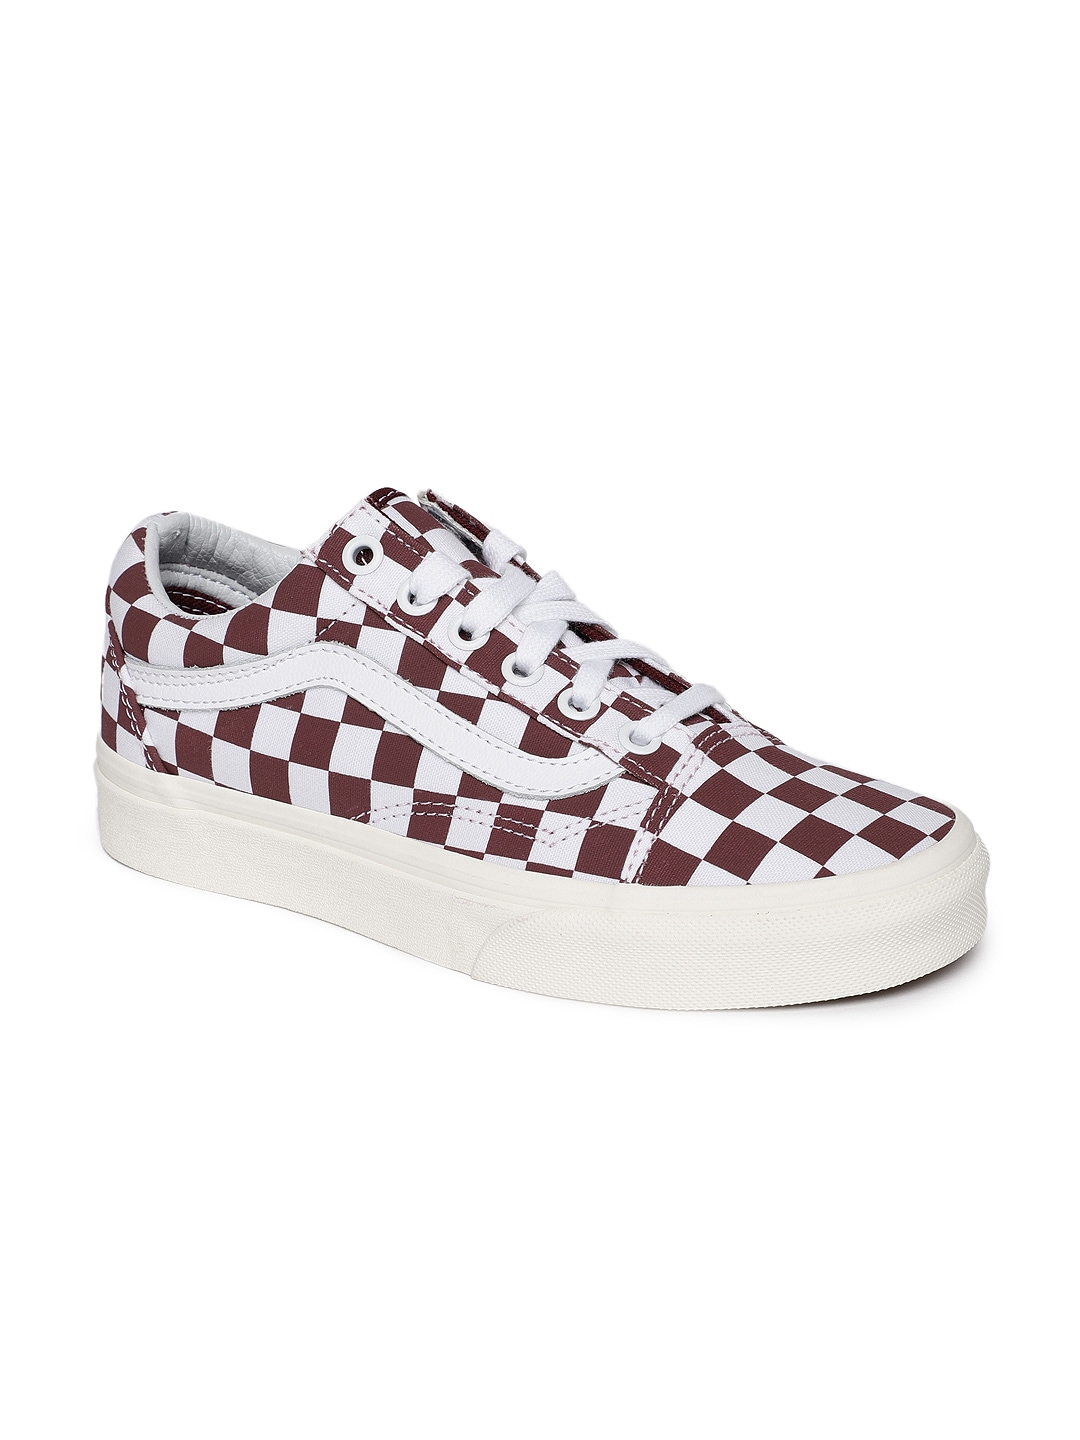 82a868a867 Maroon Casual Shoes - Buy Maroon Casual Shoes Online in India